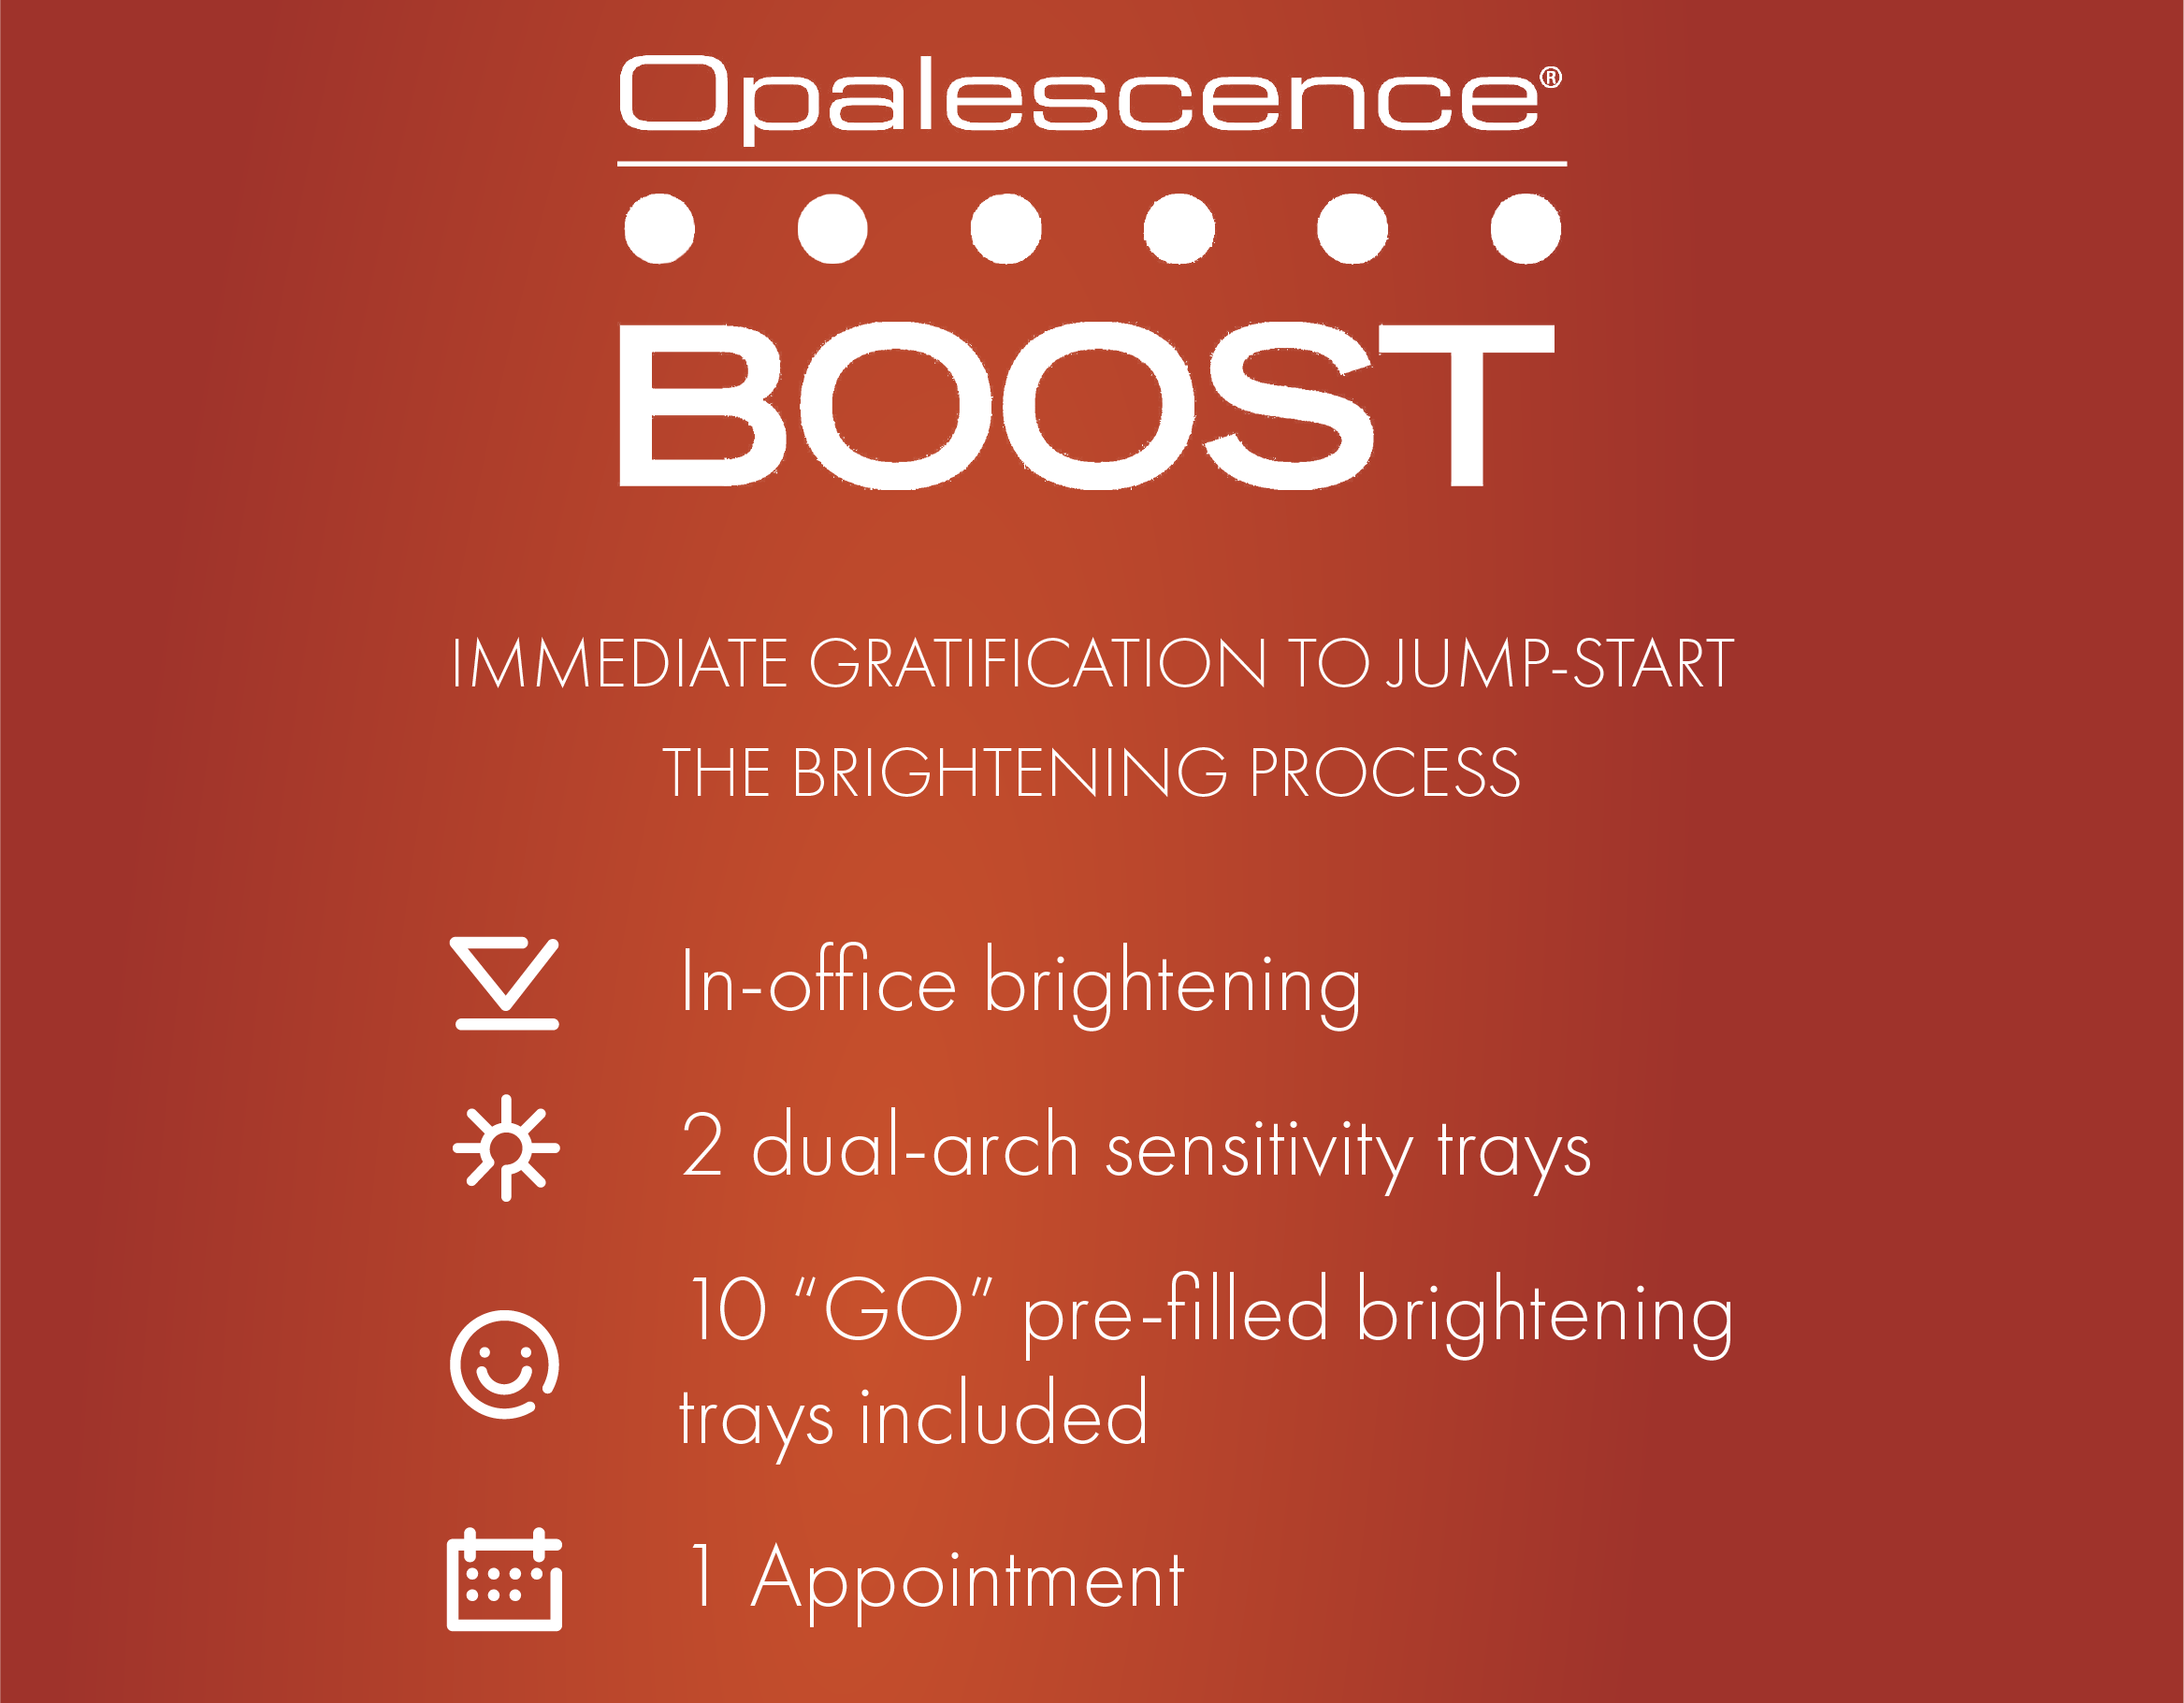 Opalescence Boost. Immediate Gratification To Jump-Start The Brightening Process. Our Boost Treament Includes an in-office brightening session, 2 dual-arch sensitivity trays, 10 GO pre-filled brightening trays to take home, and all of this in just one appointment!